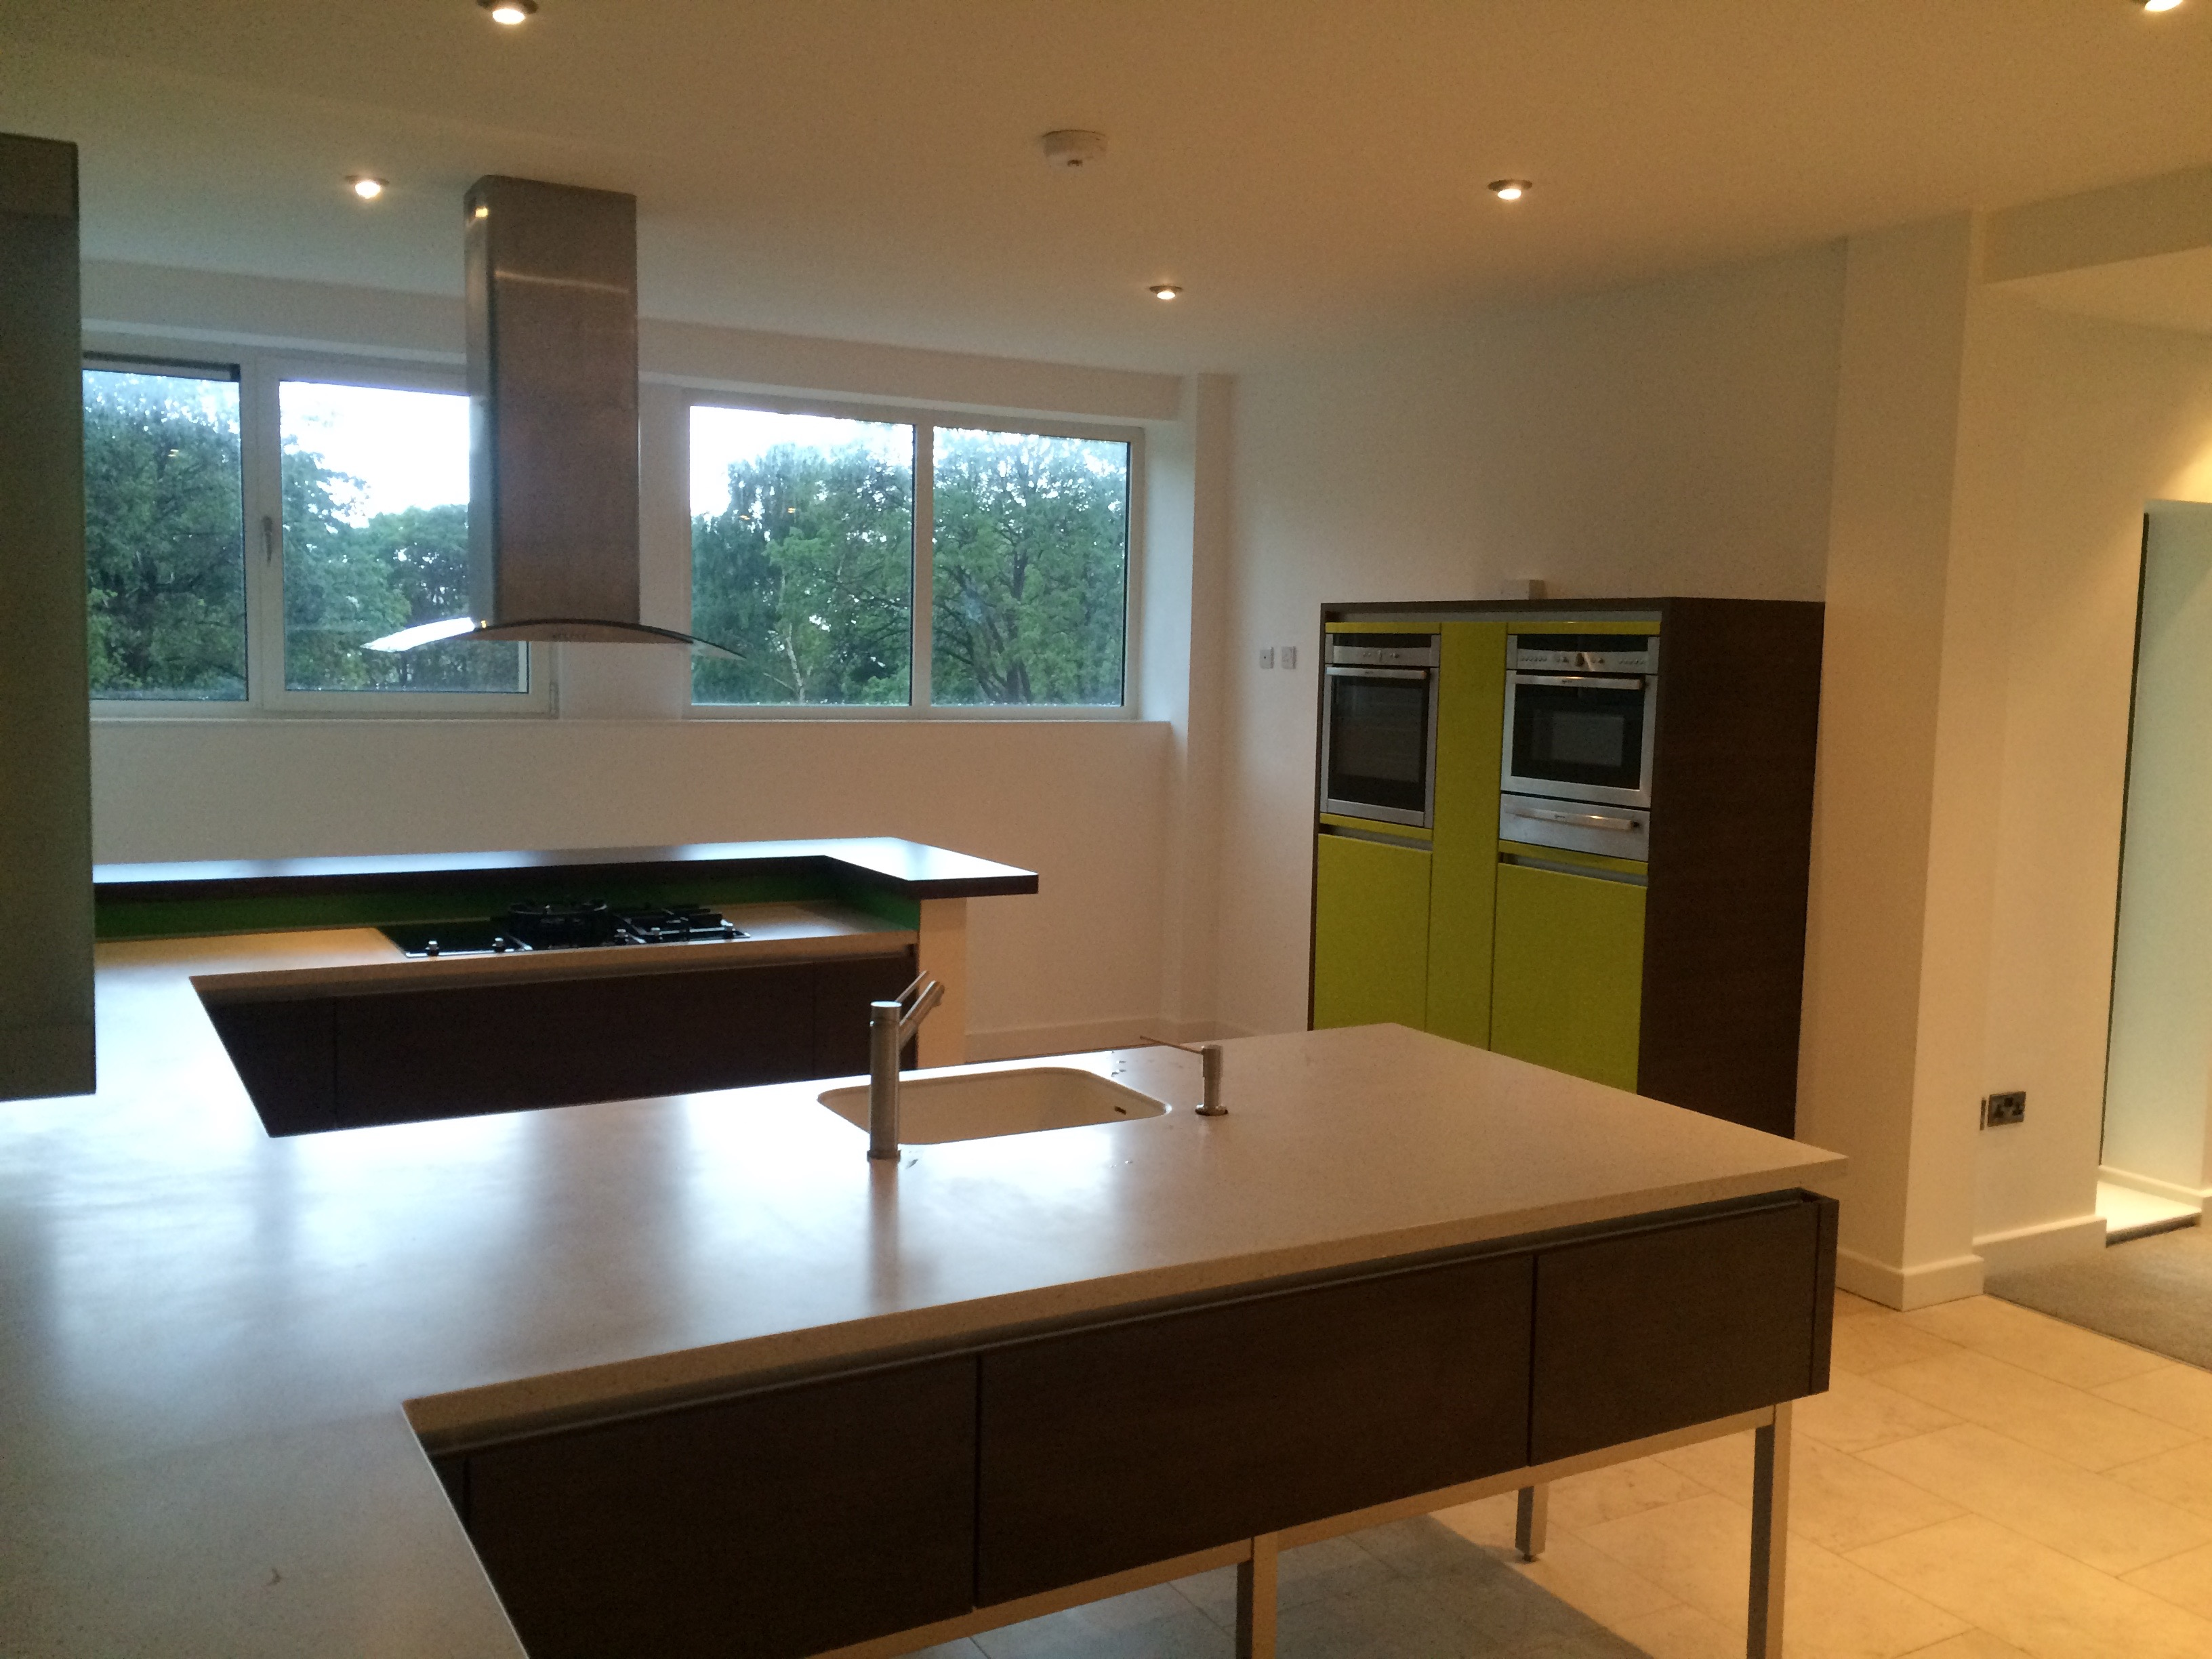 Apartment refurbishment, Birkby, Huddersfield